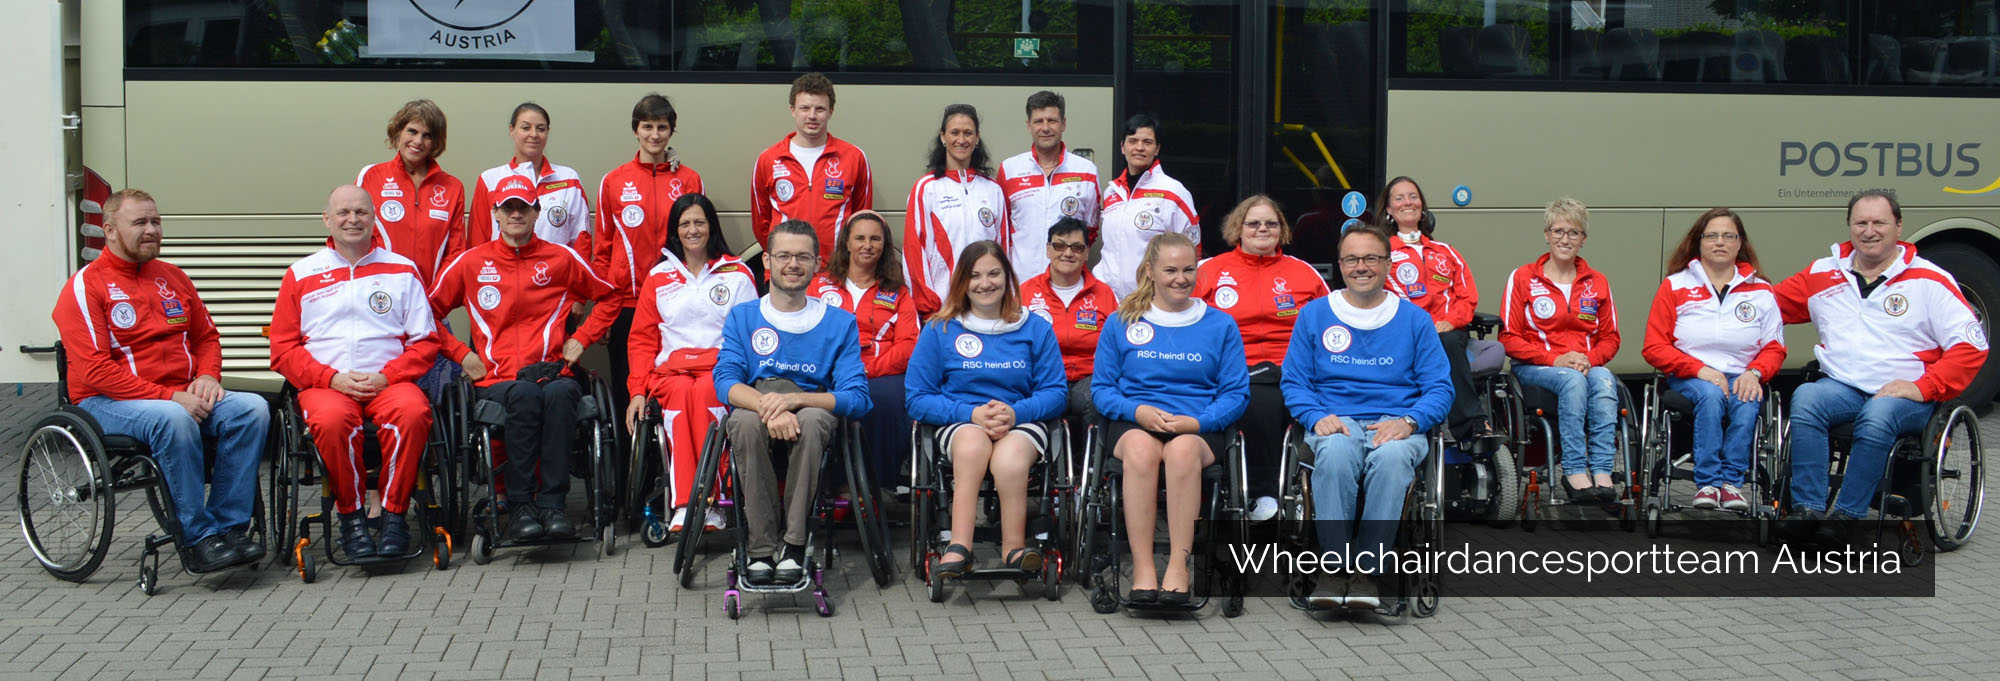 Wheelchairdancesportteam Austria